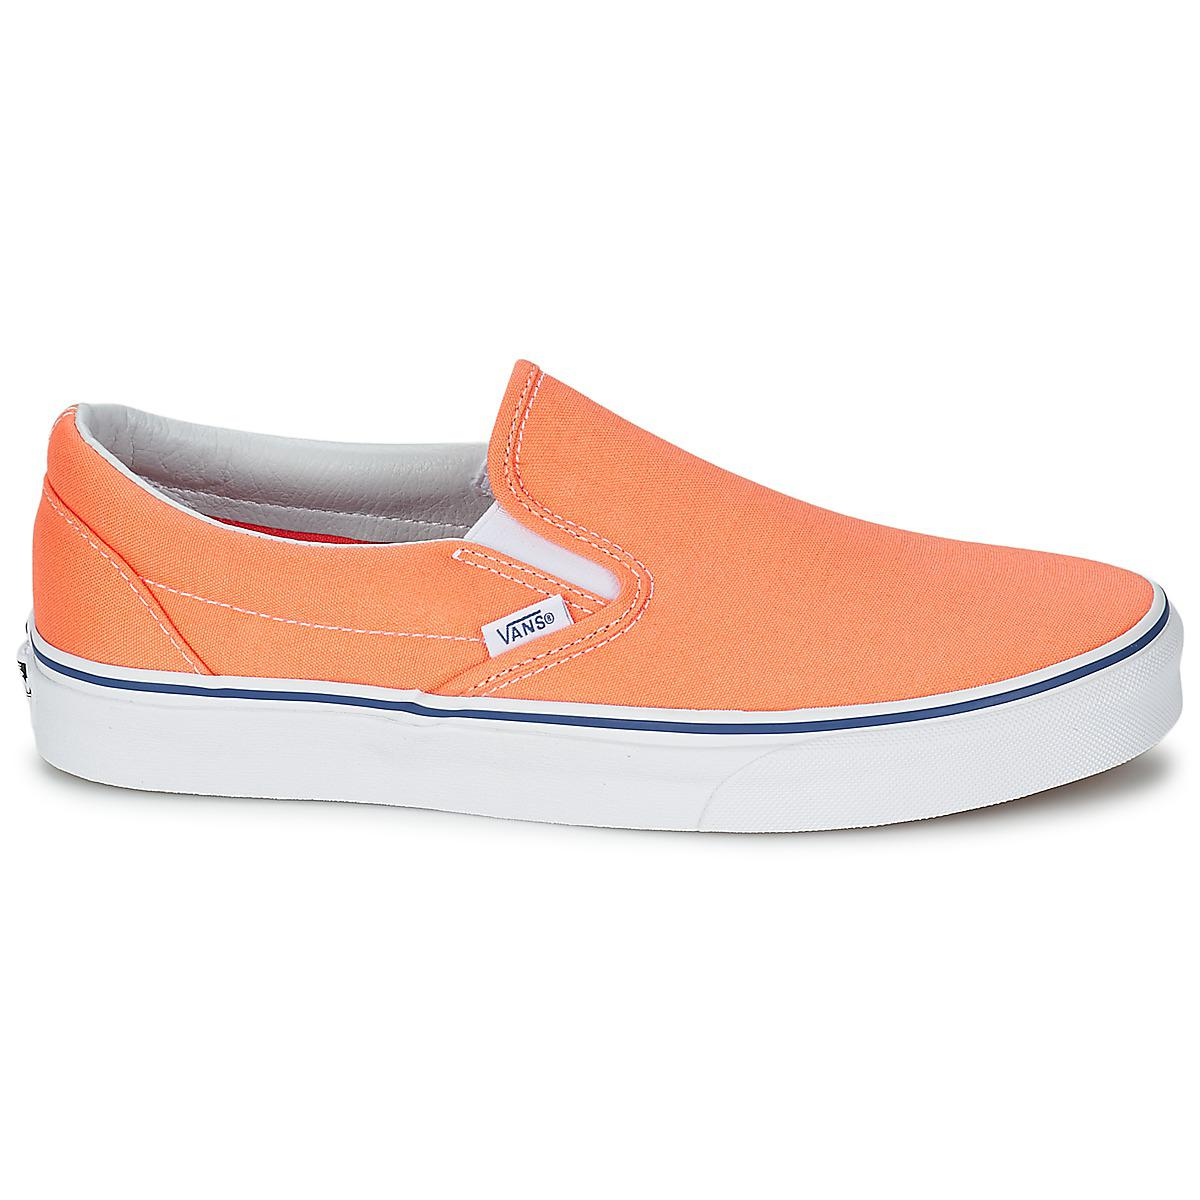 f00b85de7d290b Vans Classic Slip-on Women s Slip-ons (shoes) In Orange in Orange - Lyst